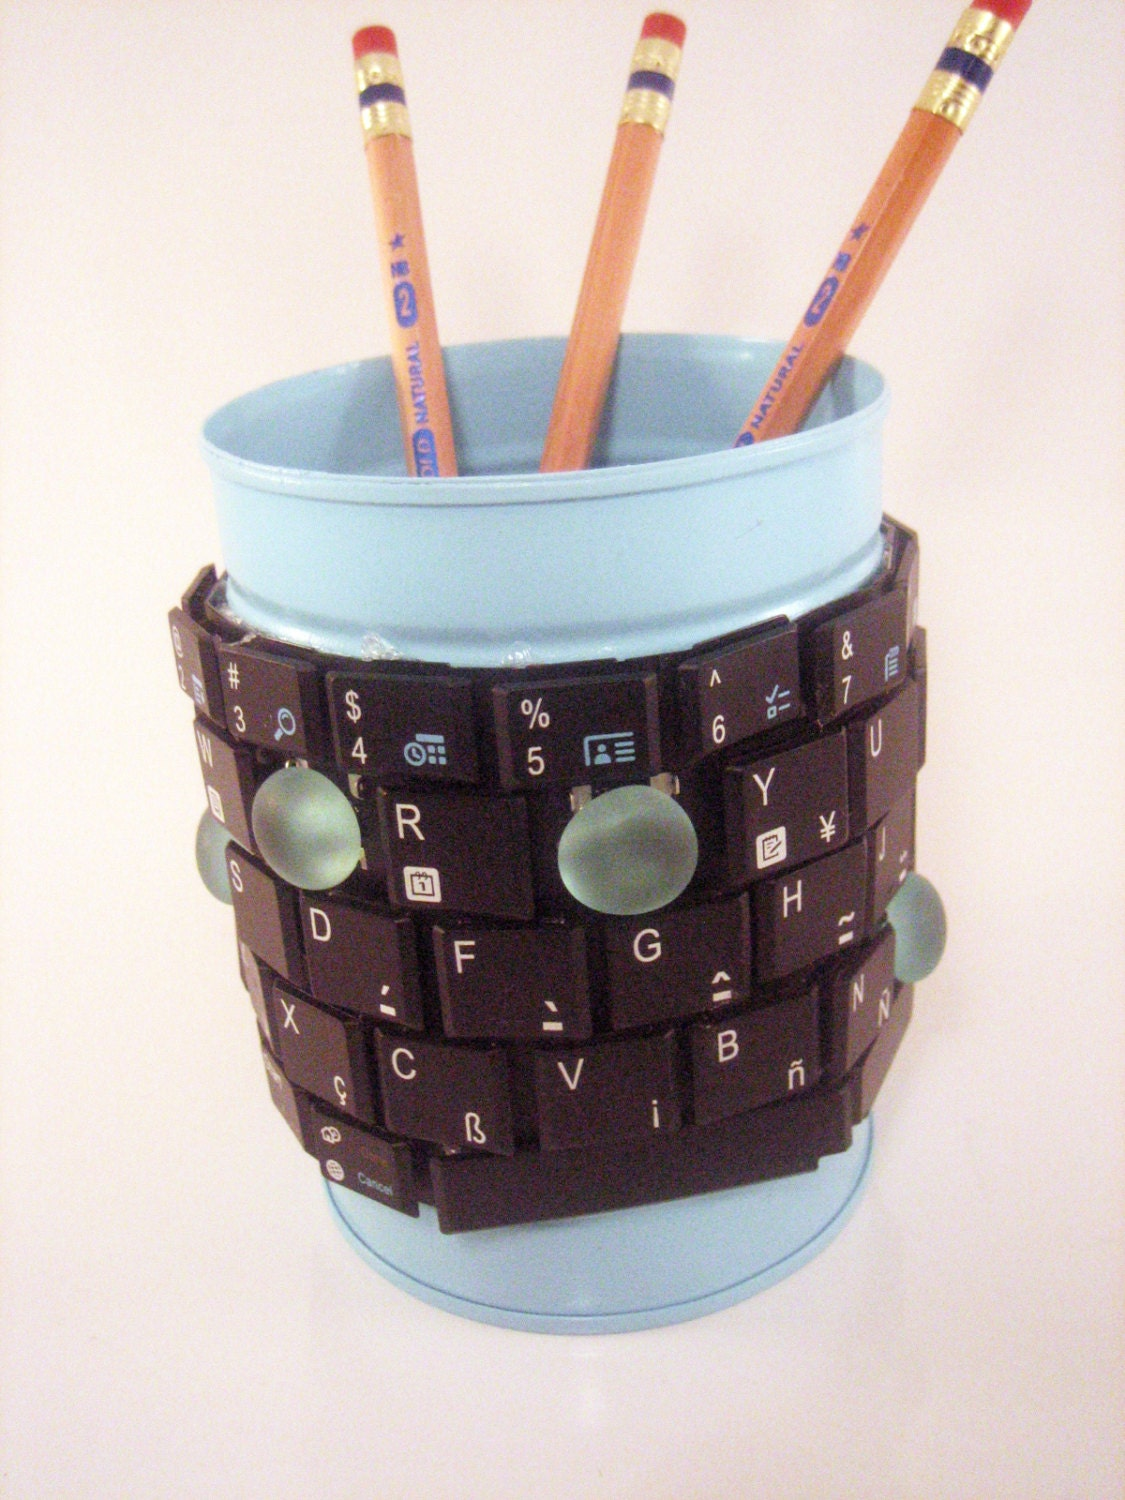 Techie pencil holder. Unique gift for men. Recycled upcycled